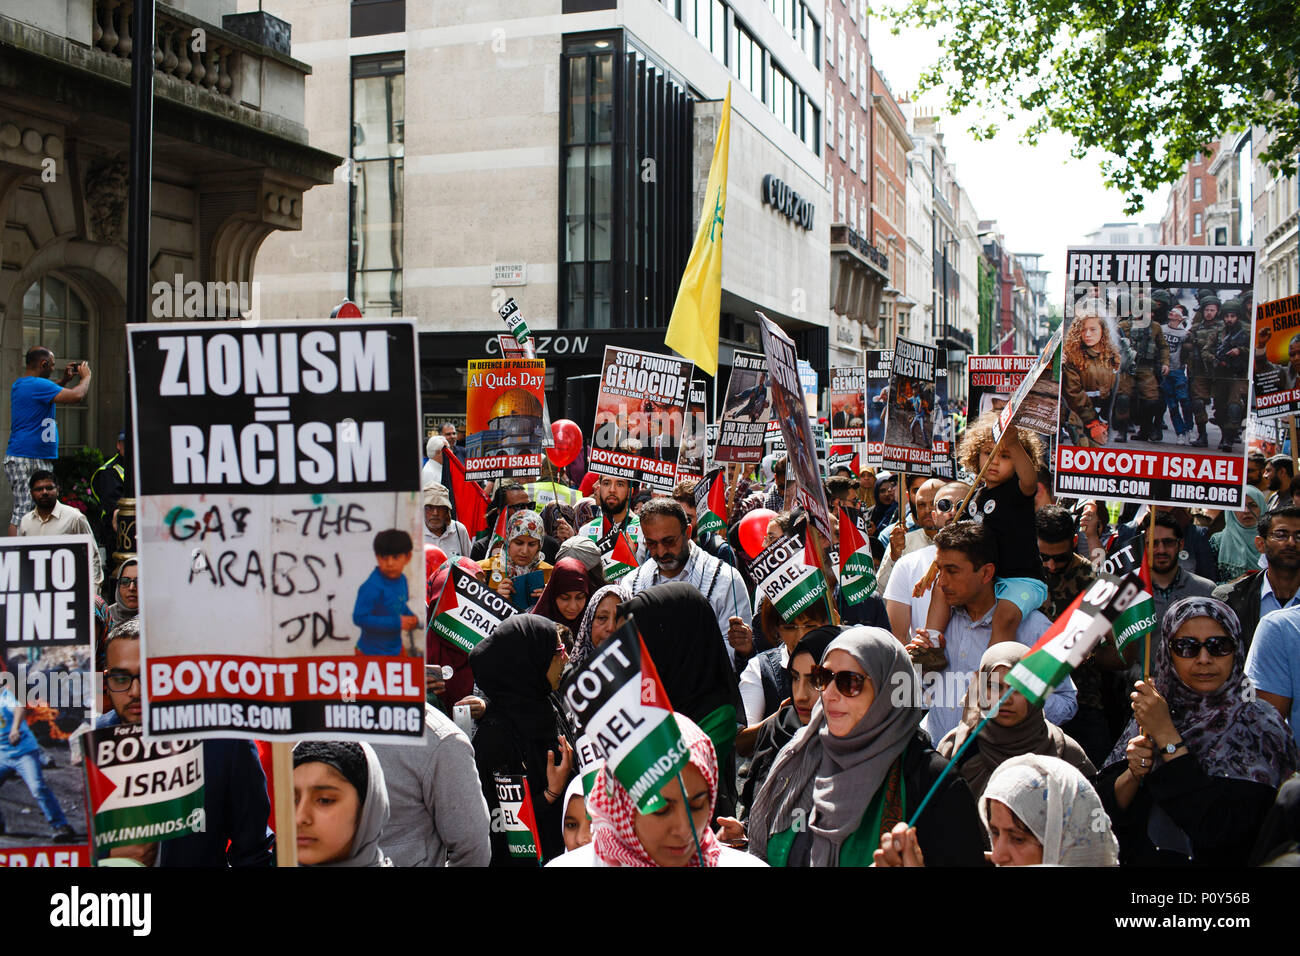 Demonstrators take part in the annual pro-Palestine/anti-Israel Al Quds Day demonstration in central London. The demonstration is notably controversial in the city for the flying of Hizbullah flags that typically takes place during the course of it. - Stock Image